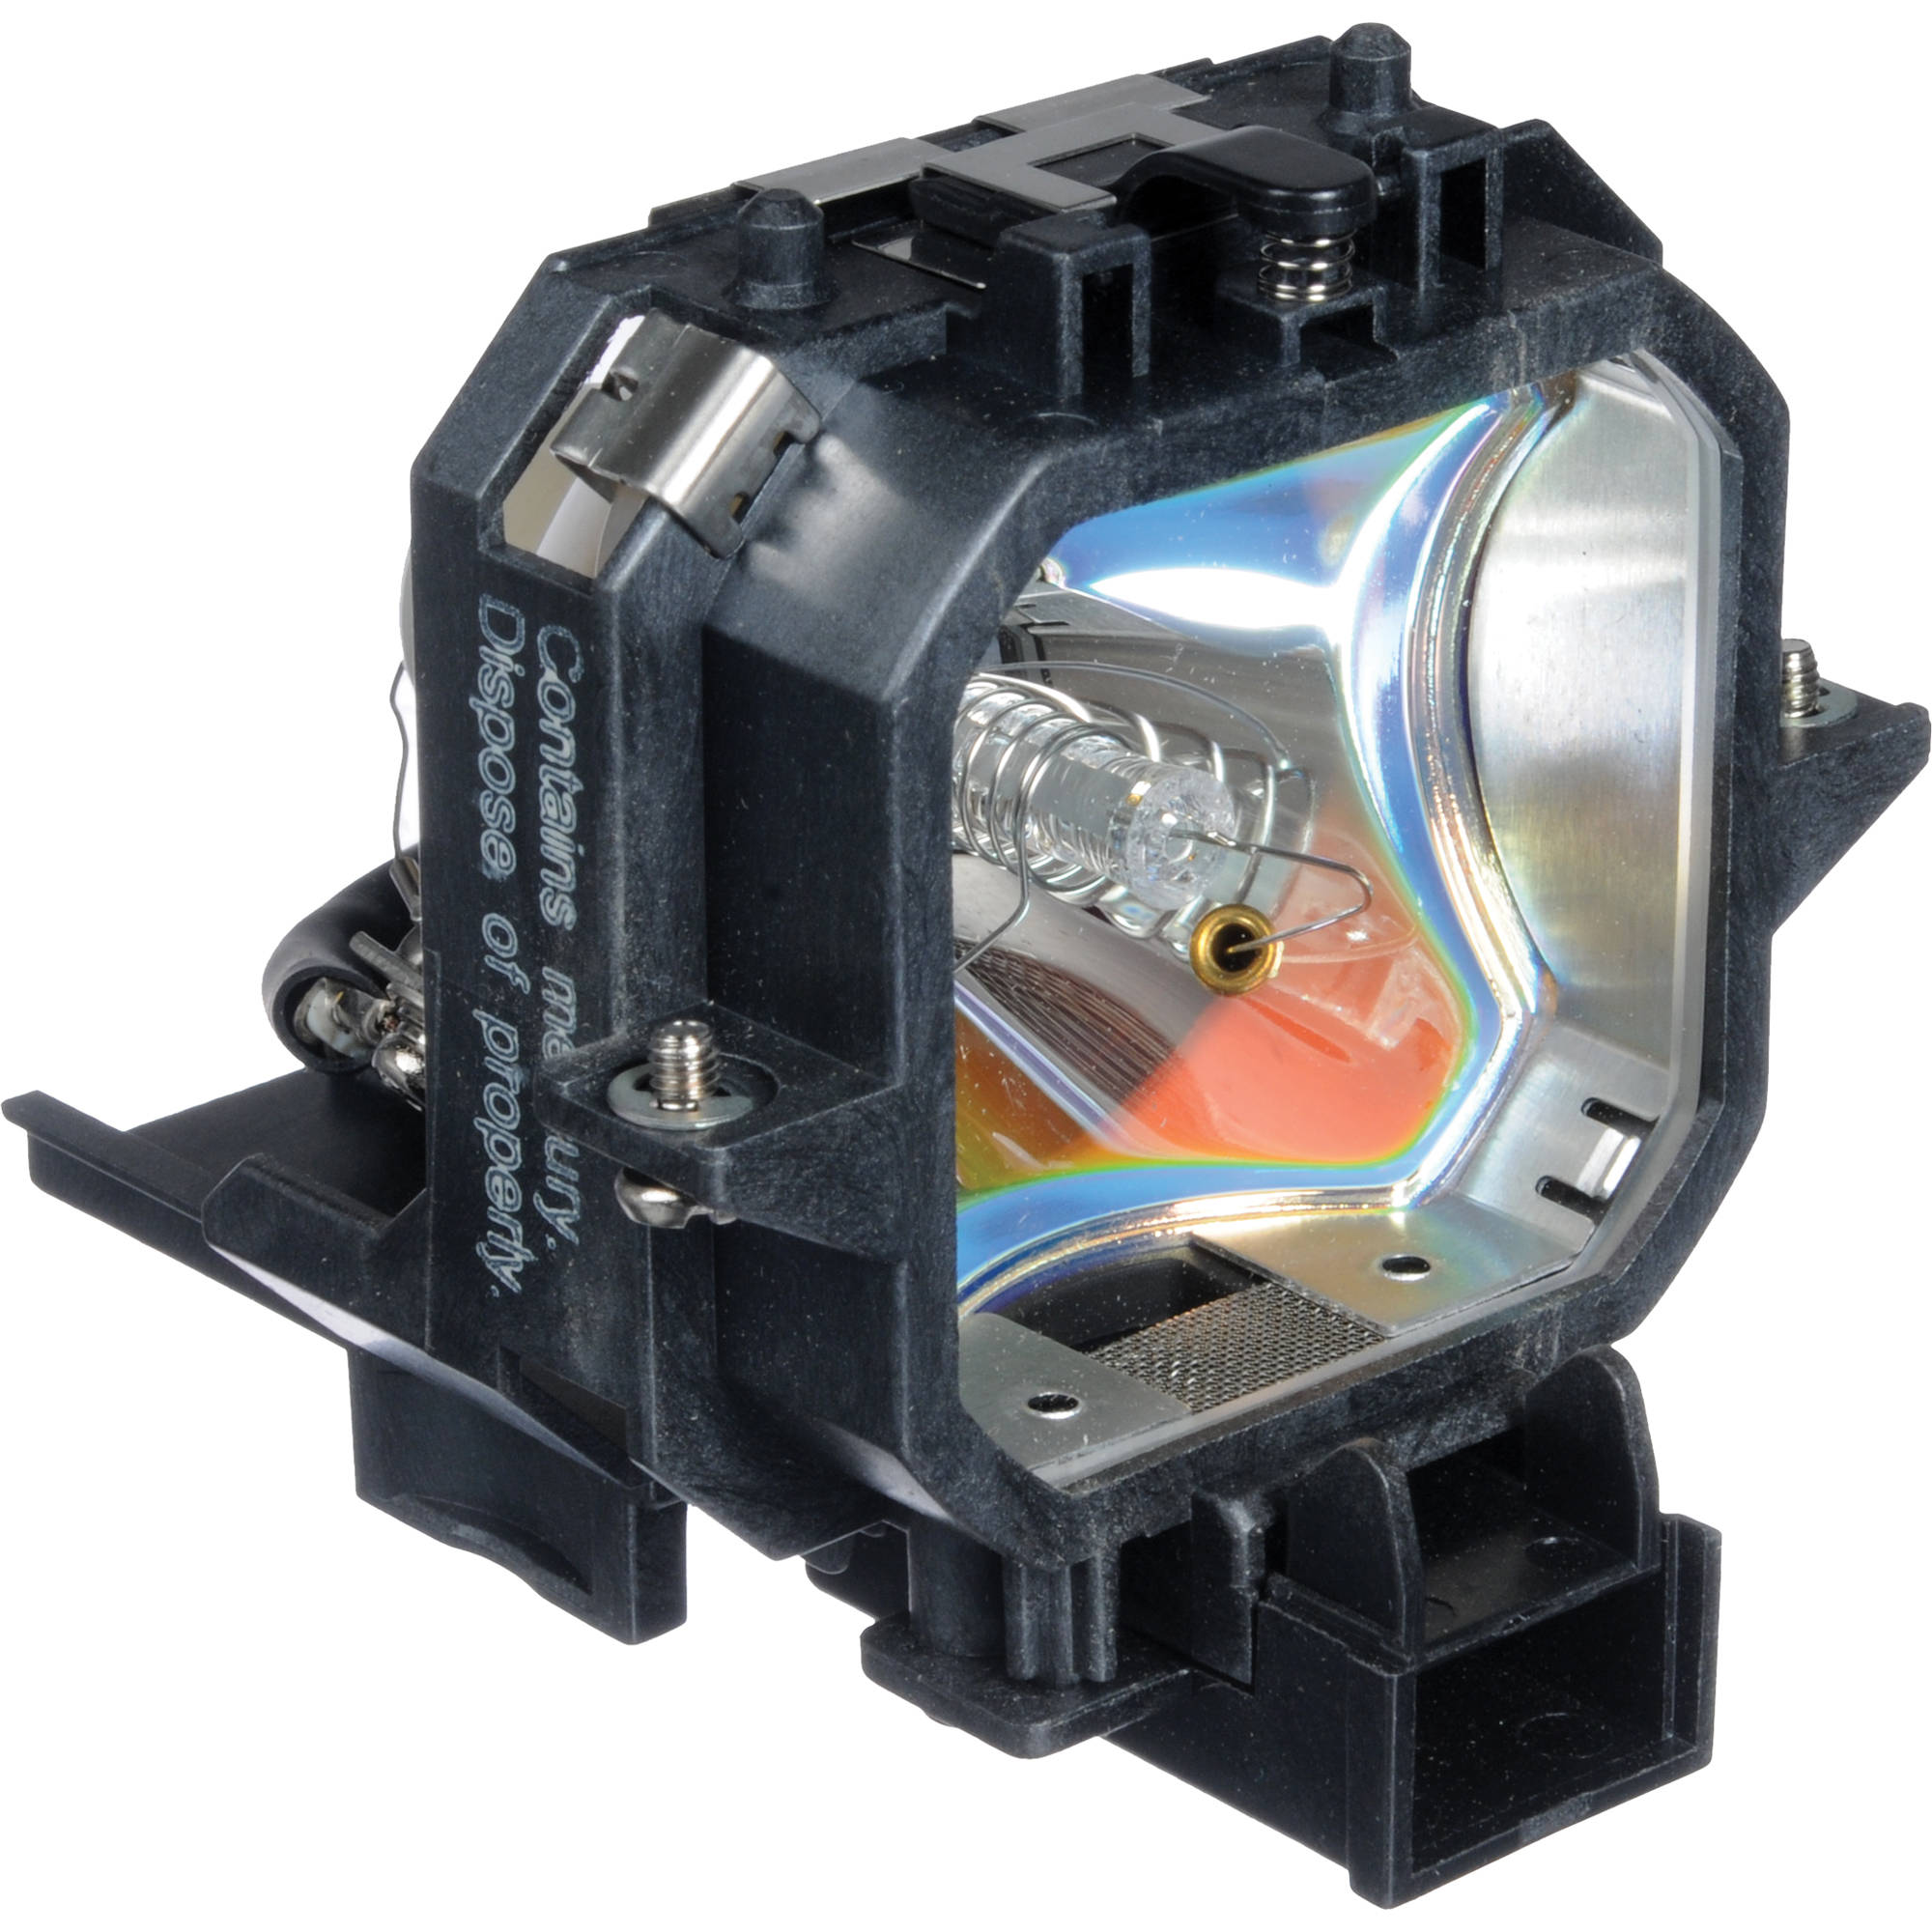 Epson V13H010L27 Projector Replacement Lamp V13H010L27 B&H Photo